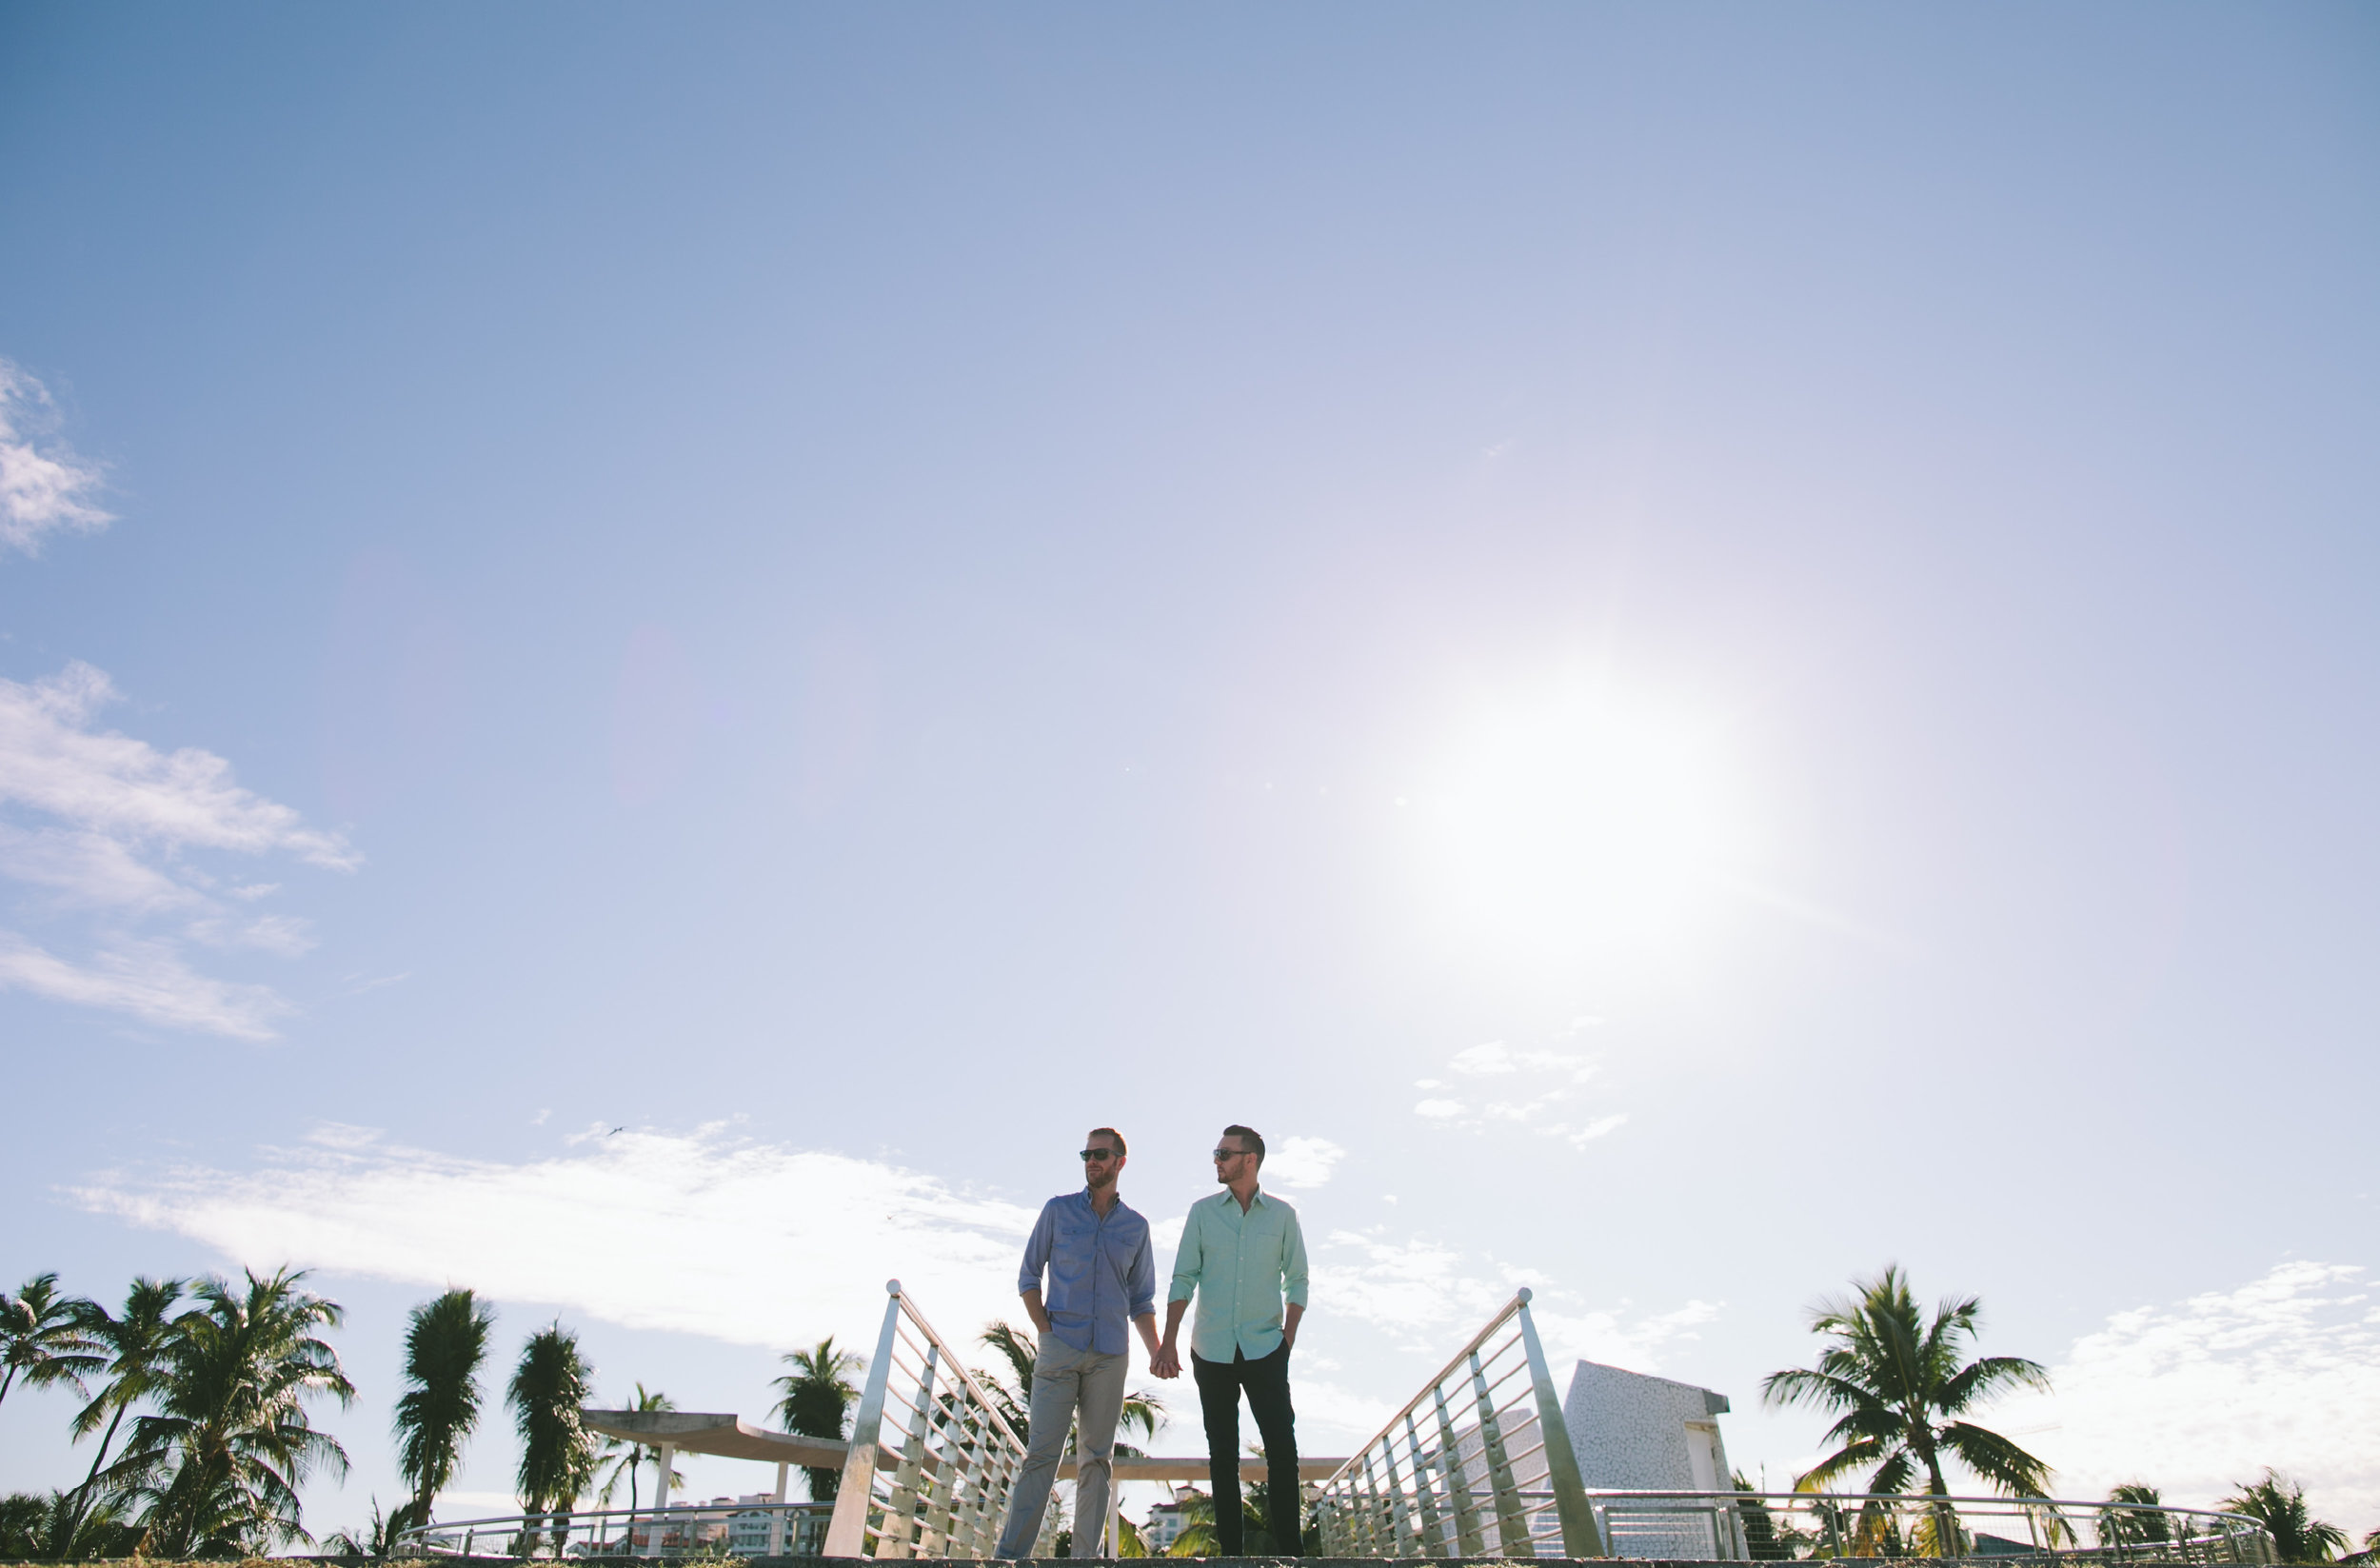 Josh + Craig South Pointe Park Miami Engagement Shoot3.jpg